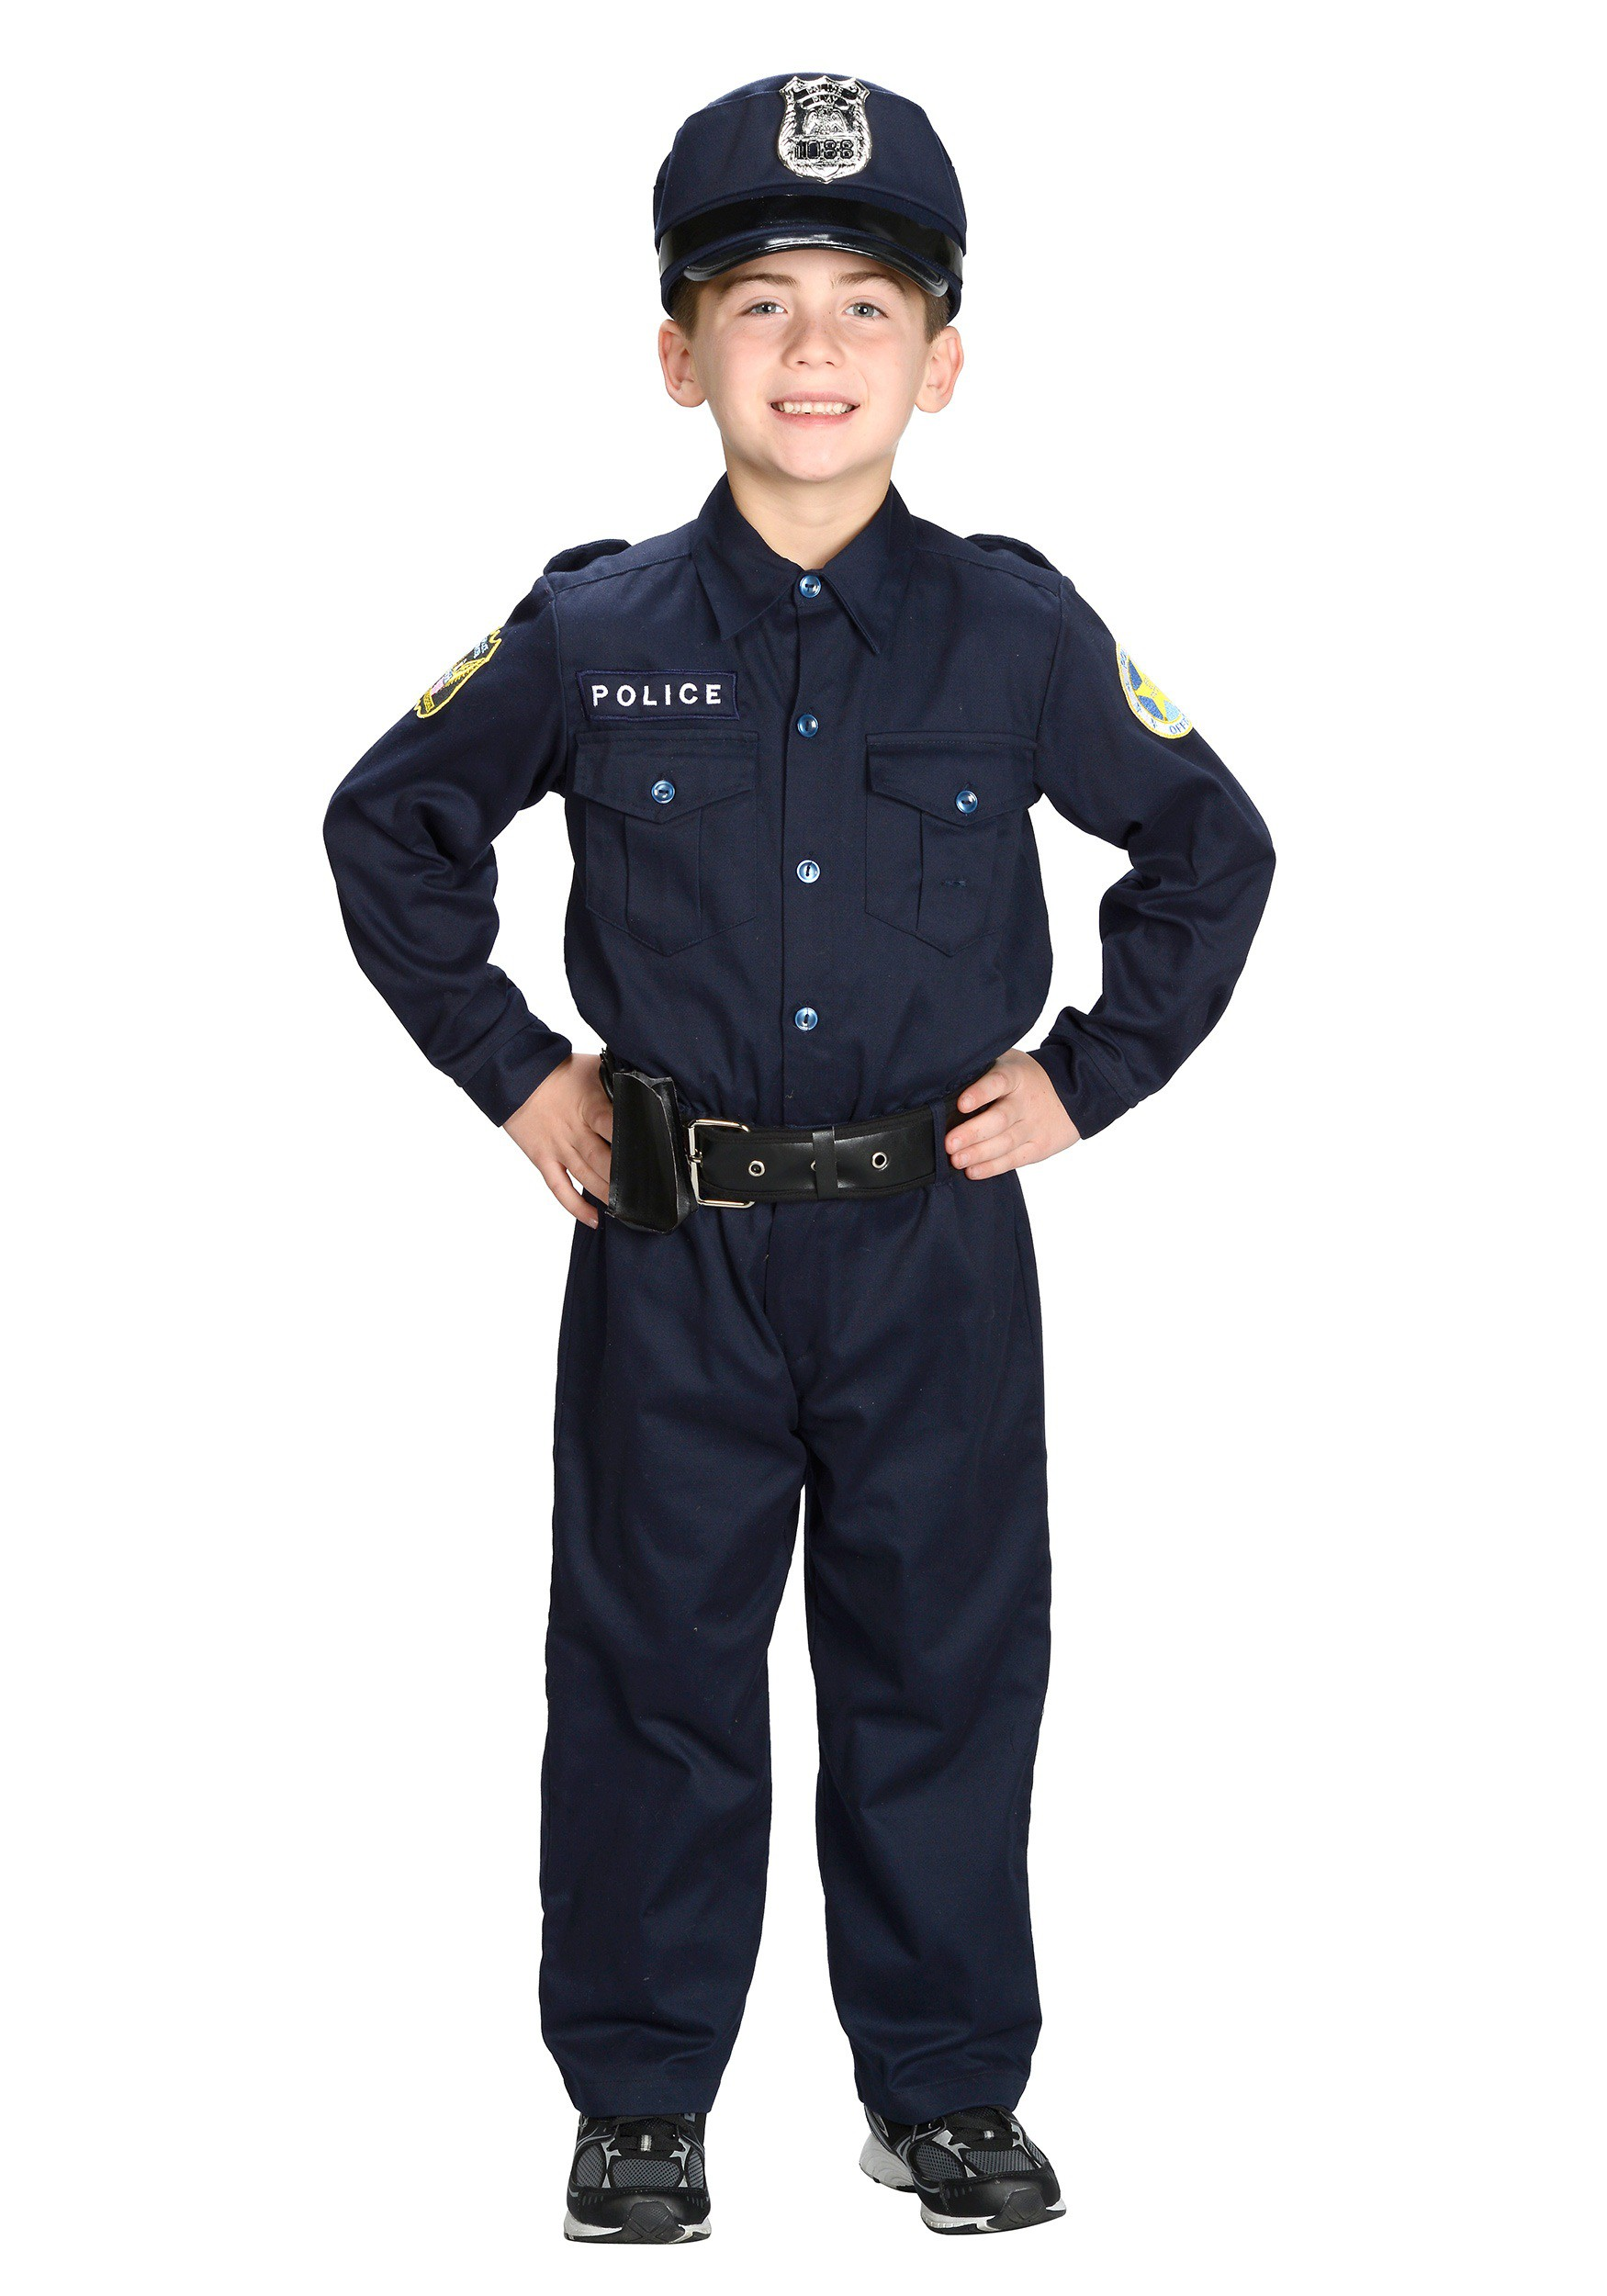 Boys Deluxe Police Officer Costume For Child